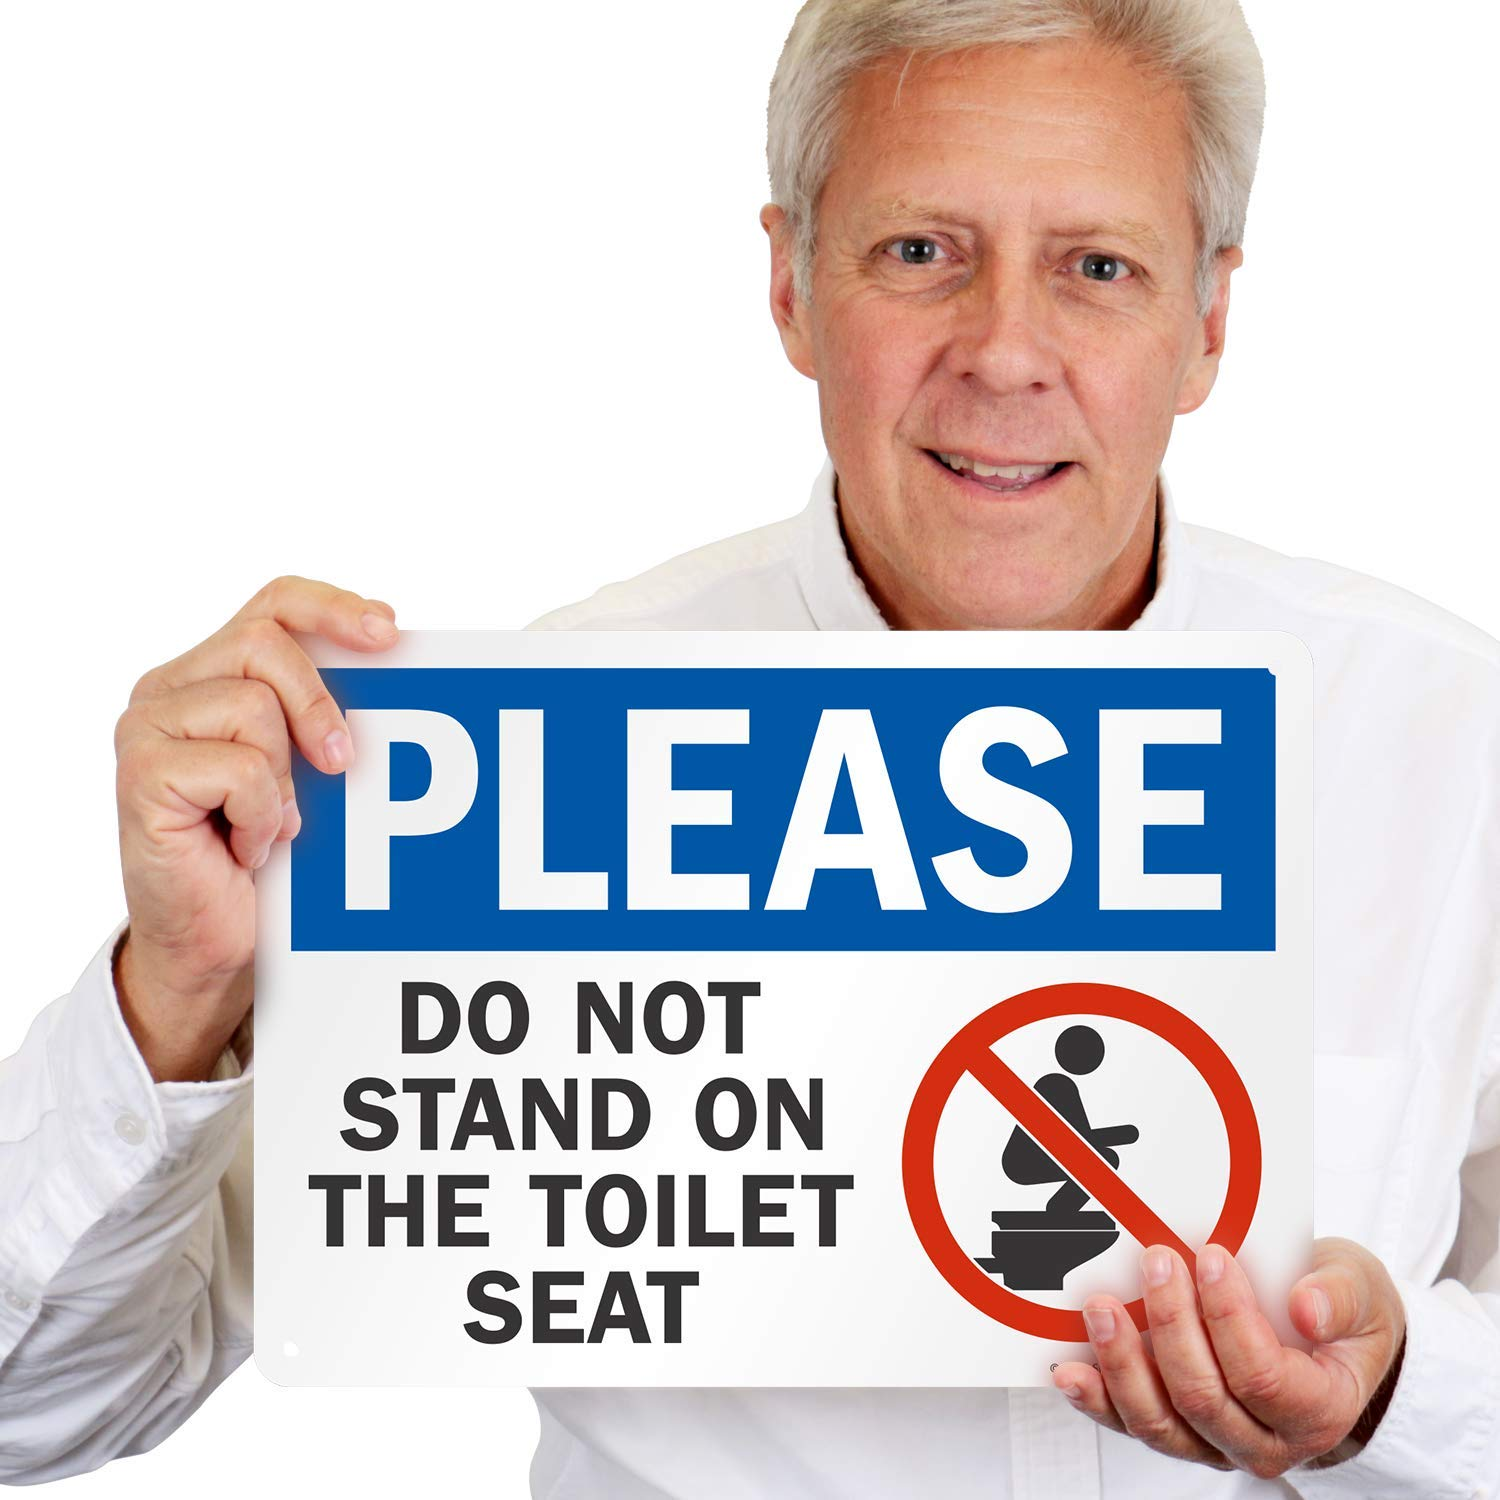 Do Not Stand on The Toilet Seat Sign by SmartSign 7 x 10 Aluminum Please